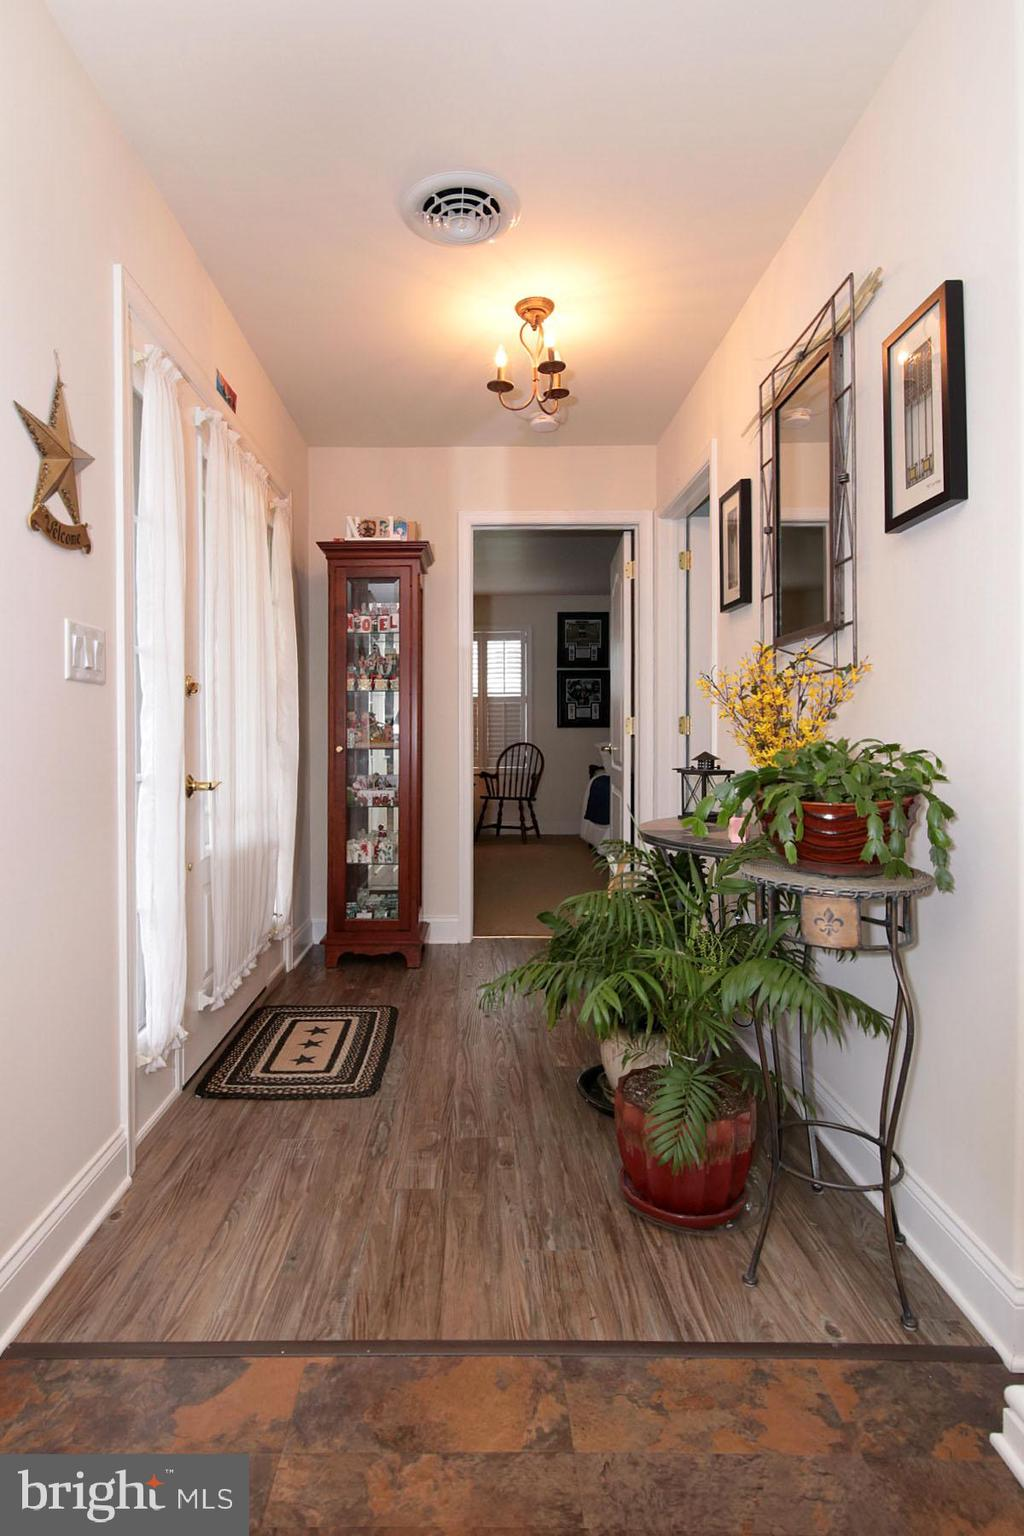 Entrance Foyer with water resistant flooring